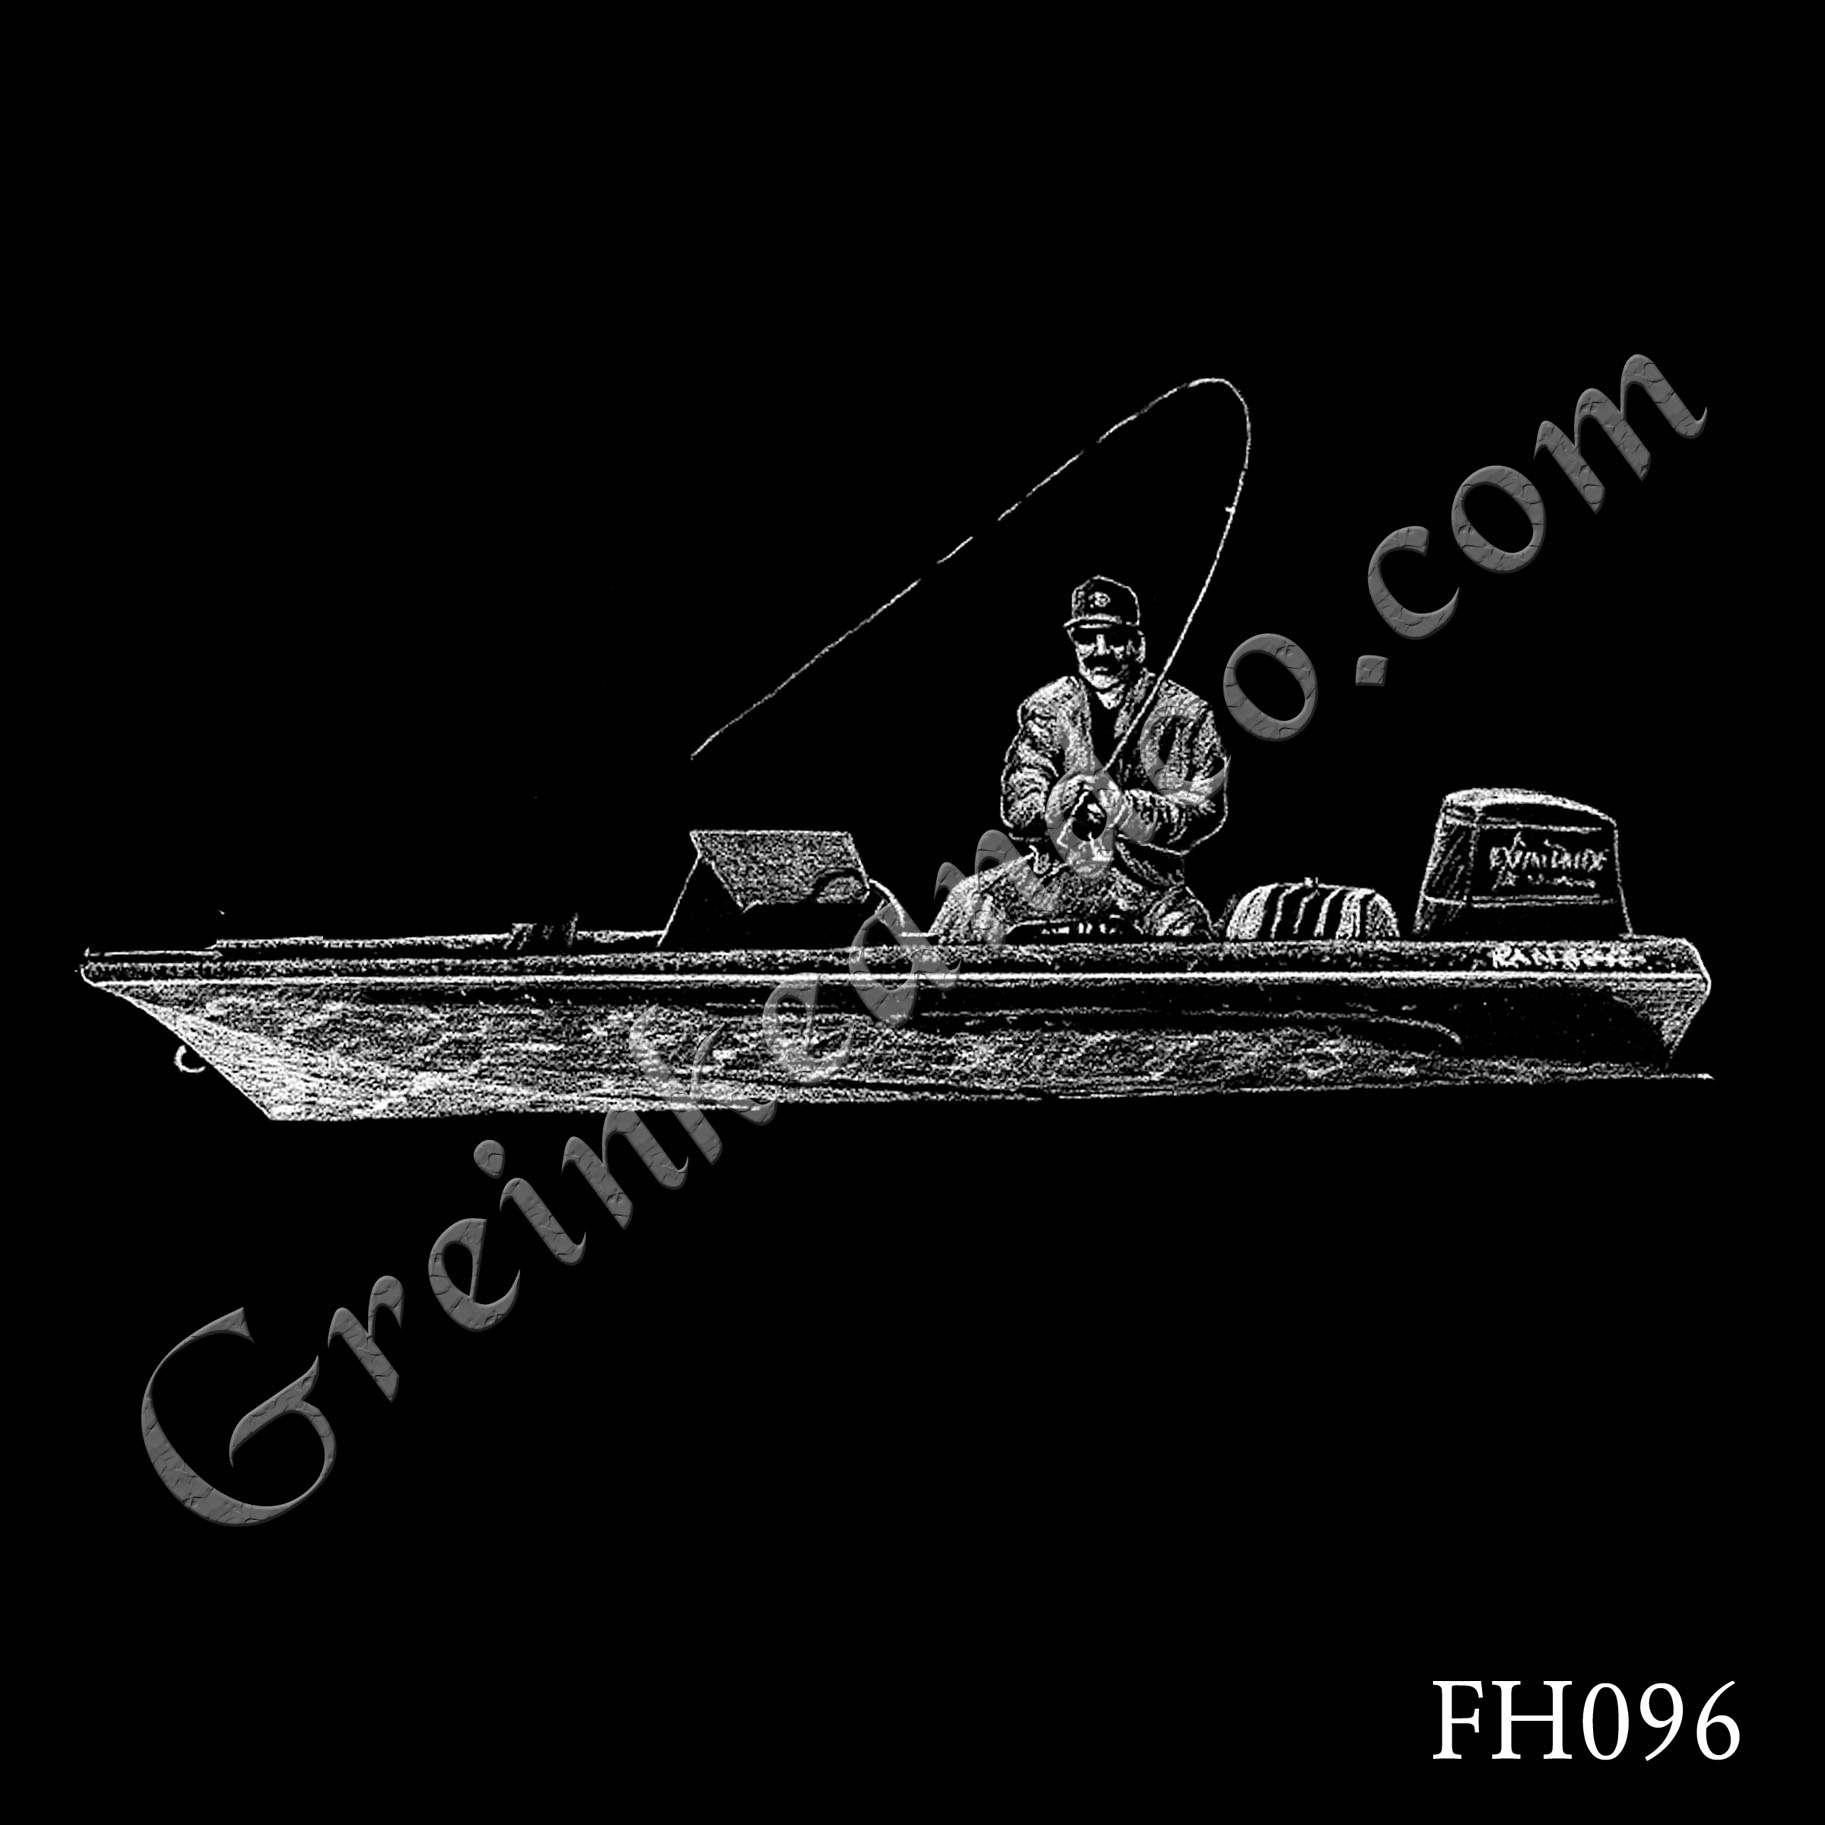 FH096 - Man Fishing in Boat